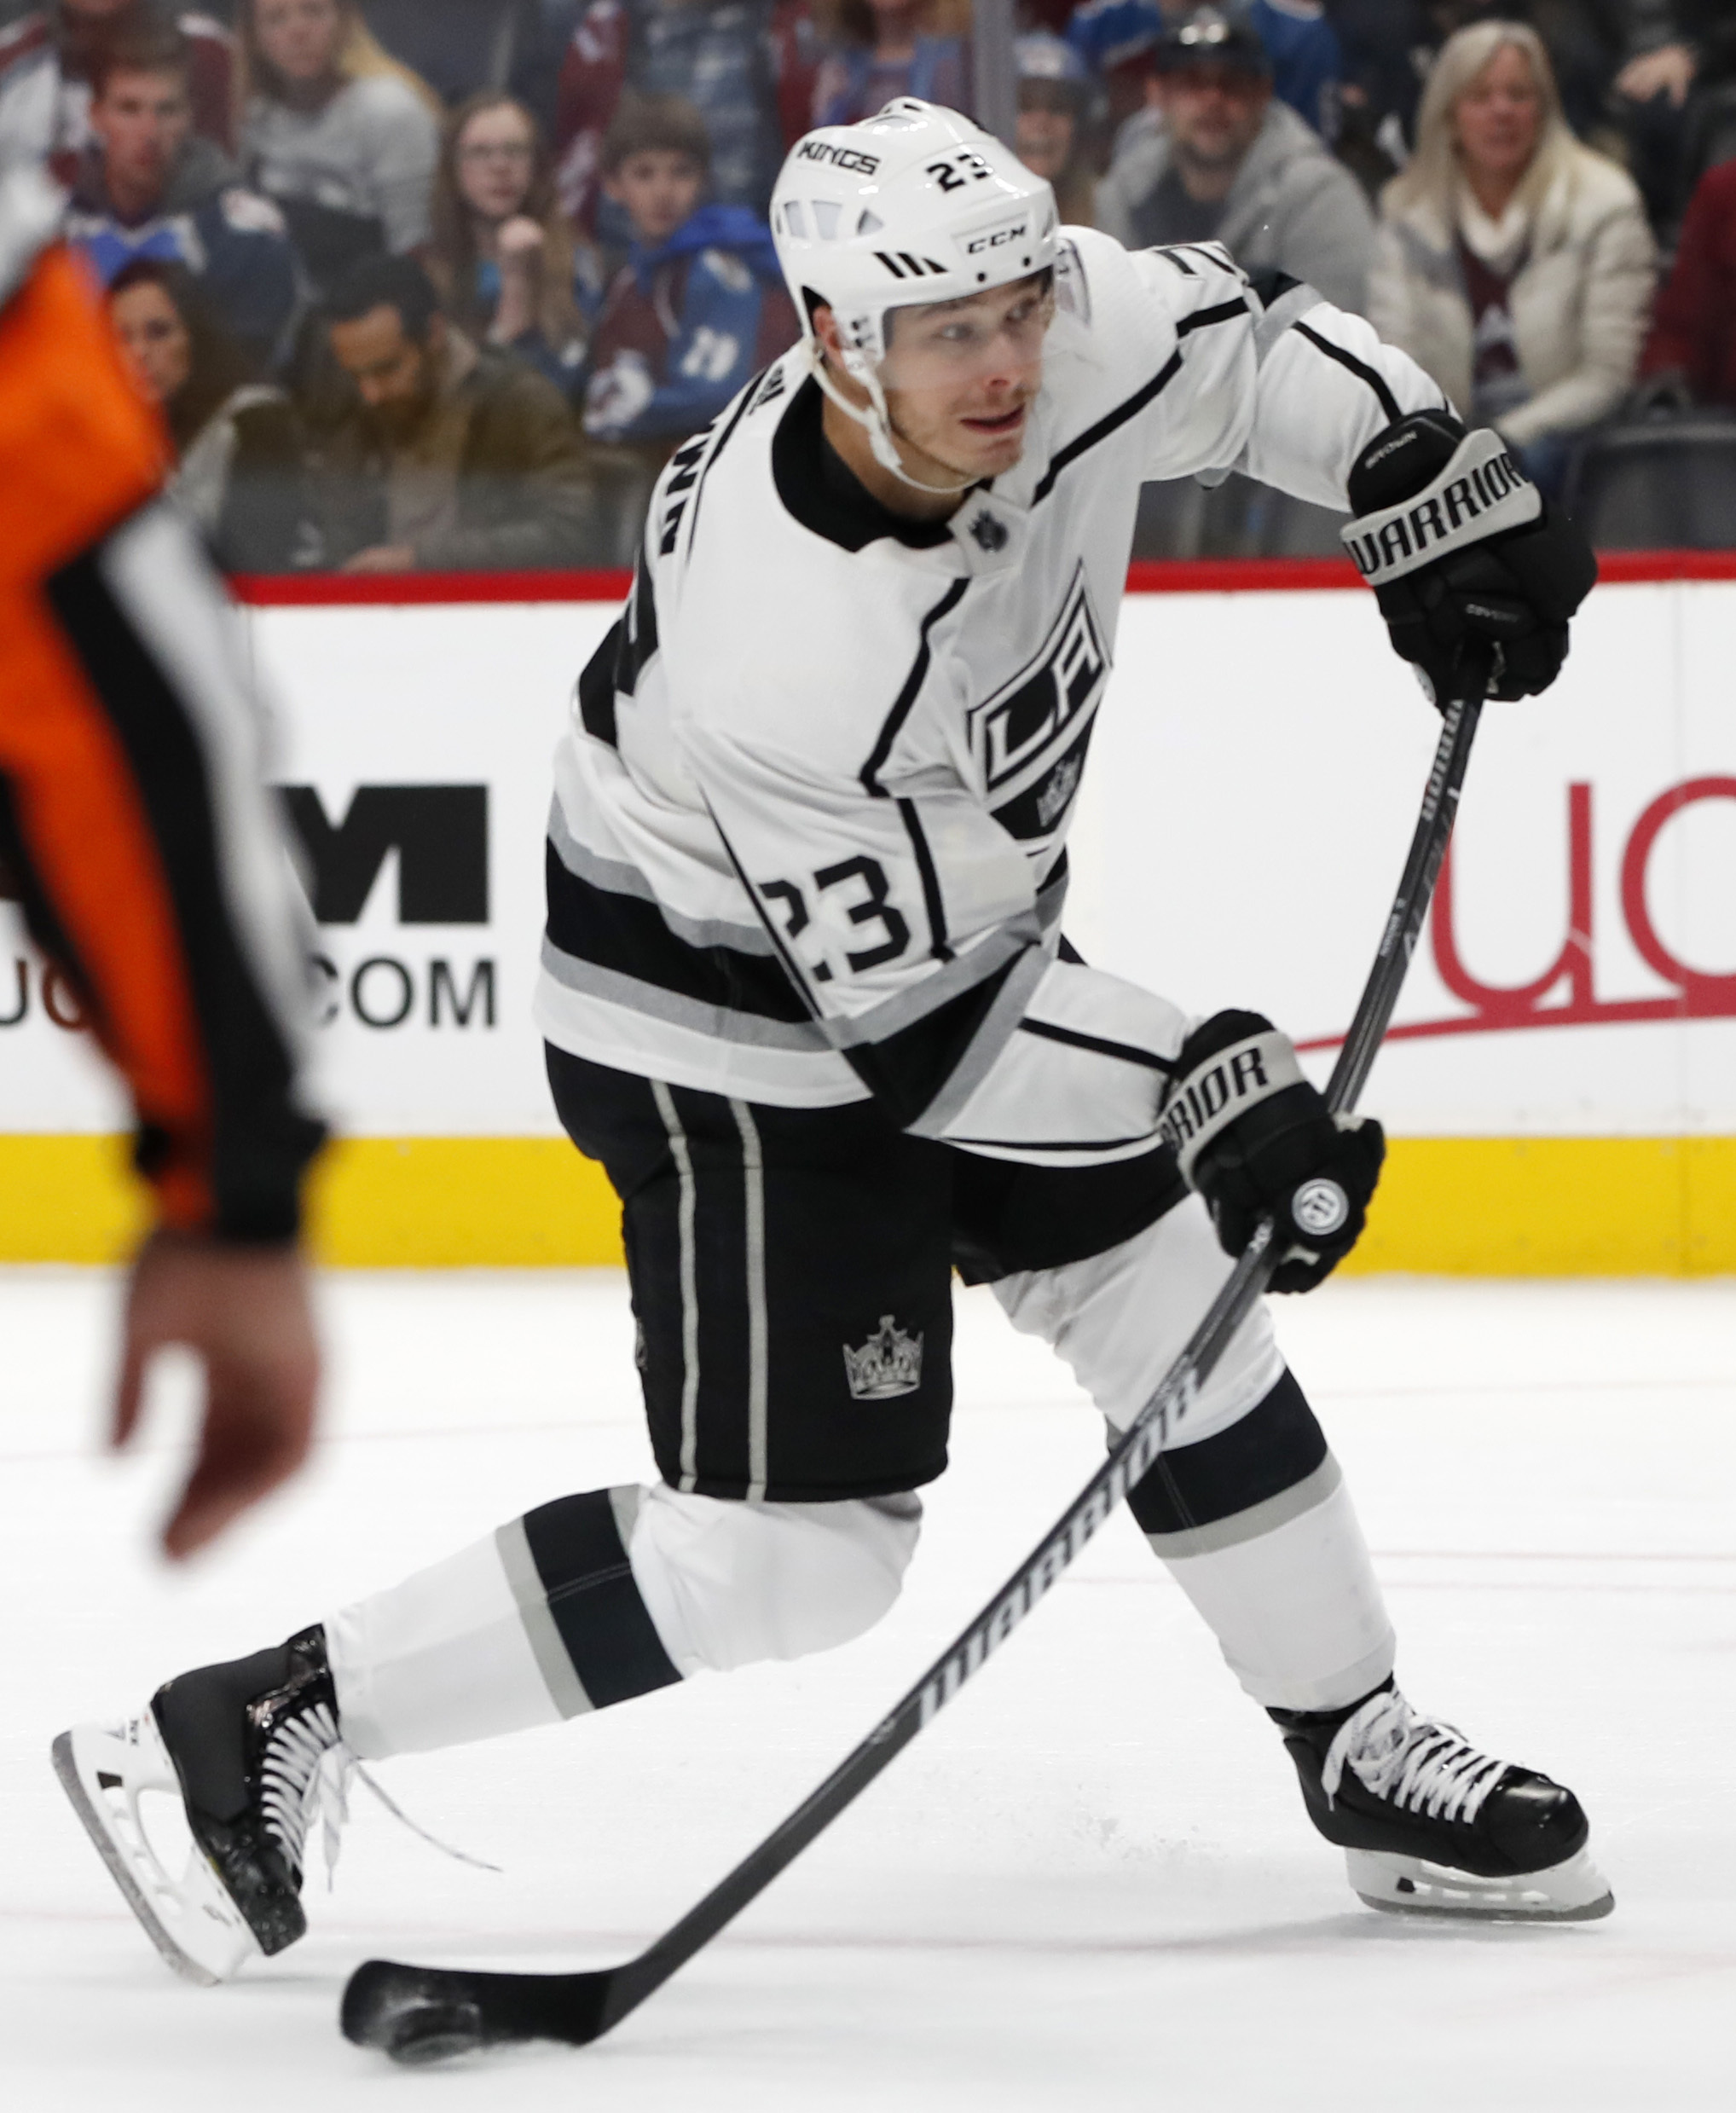 Brown's overtime goal lifts Kings past Avalanche 3-2